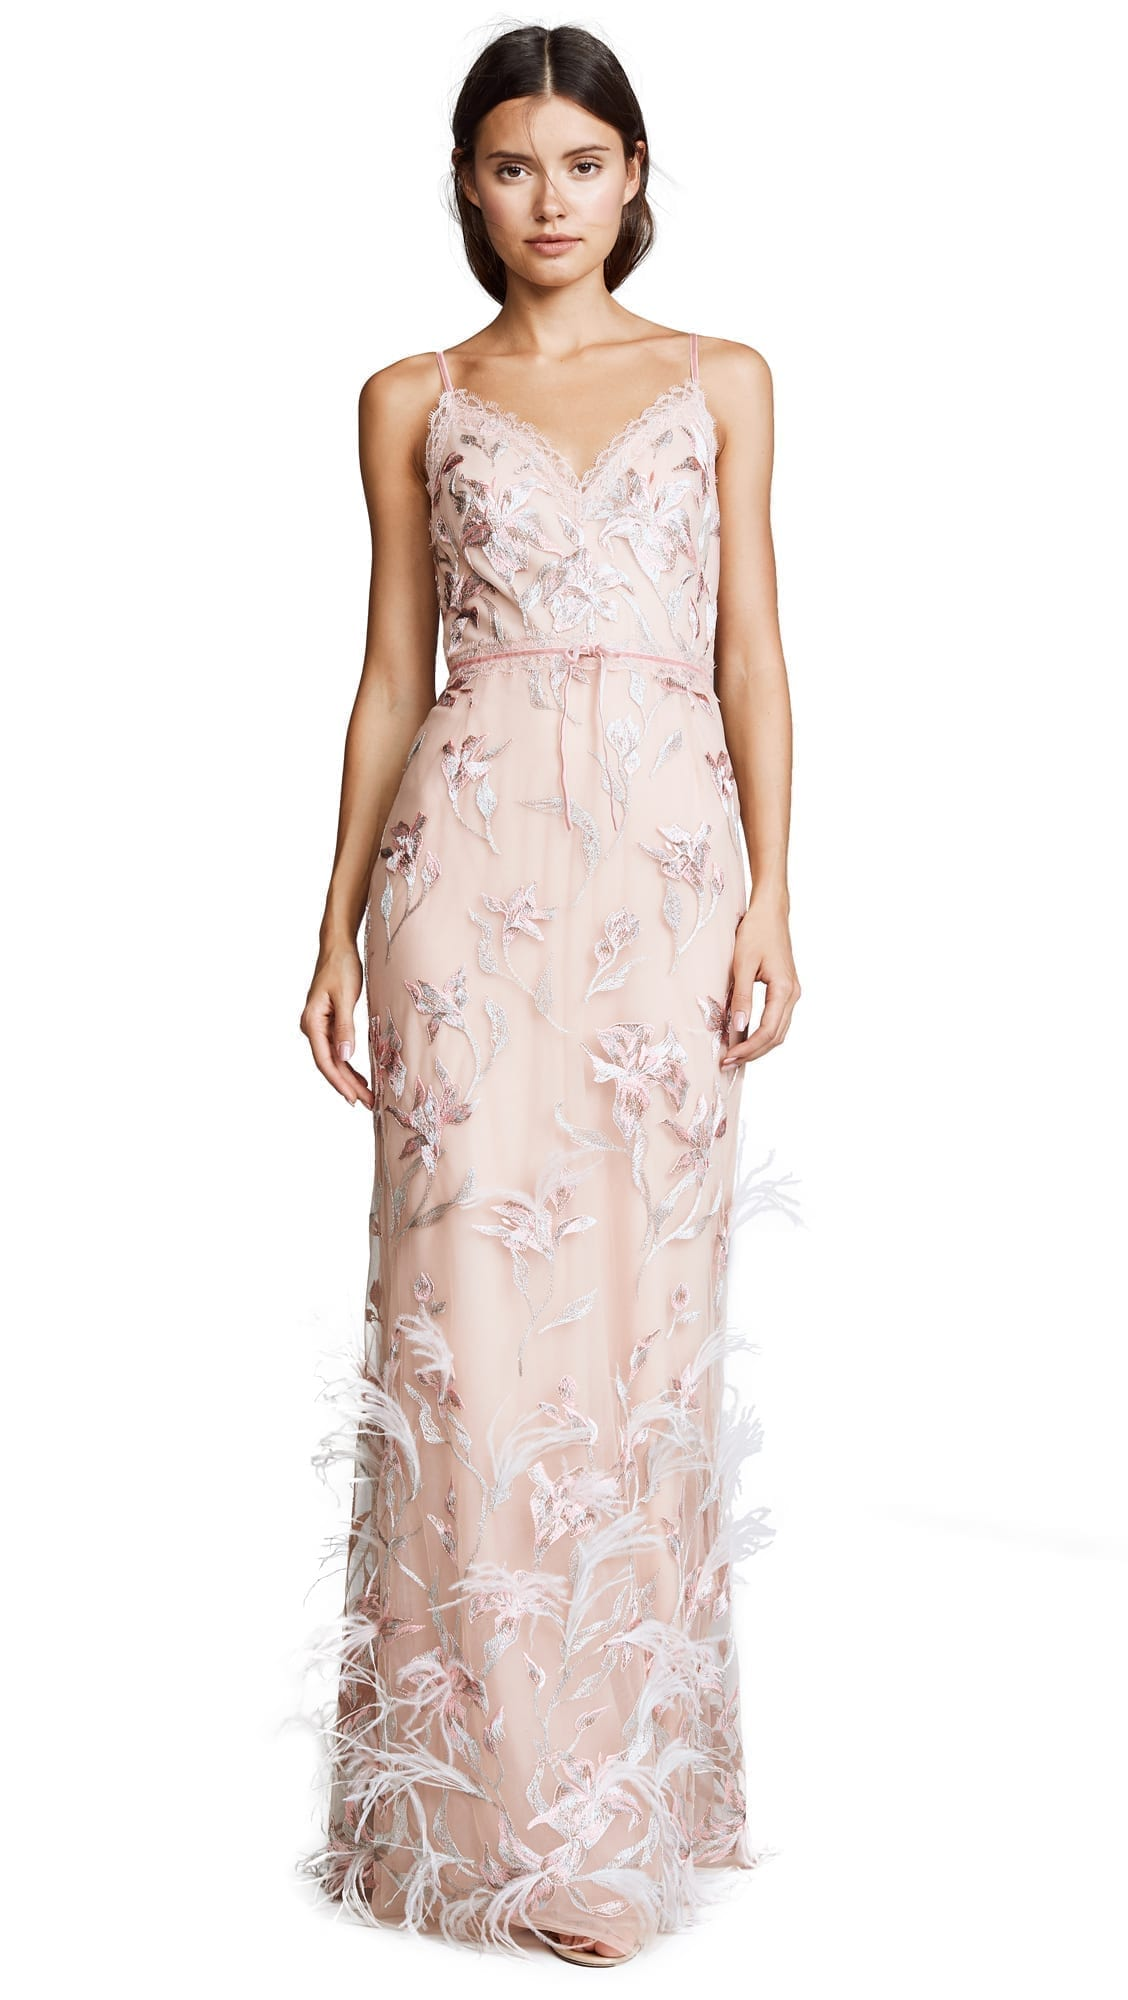 44302741e858 MARCHESA NOTTE Sleeveless V Neck Feather Embroidered Blush Gown - We ...